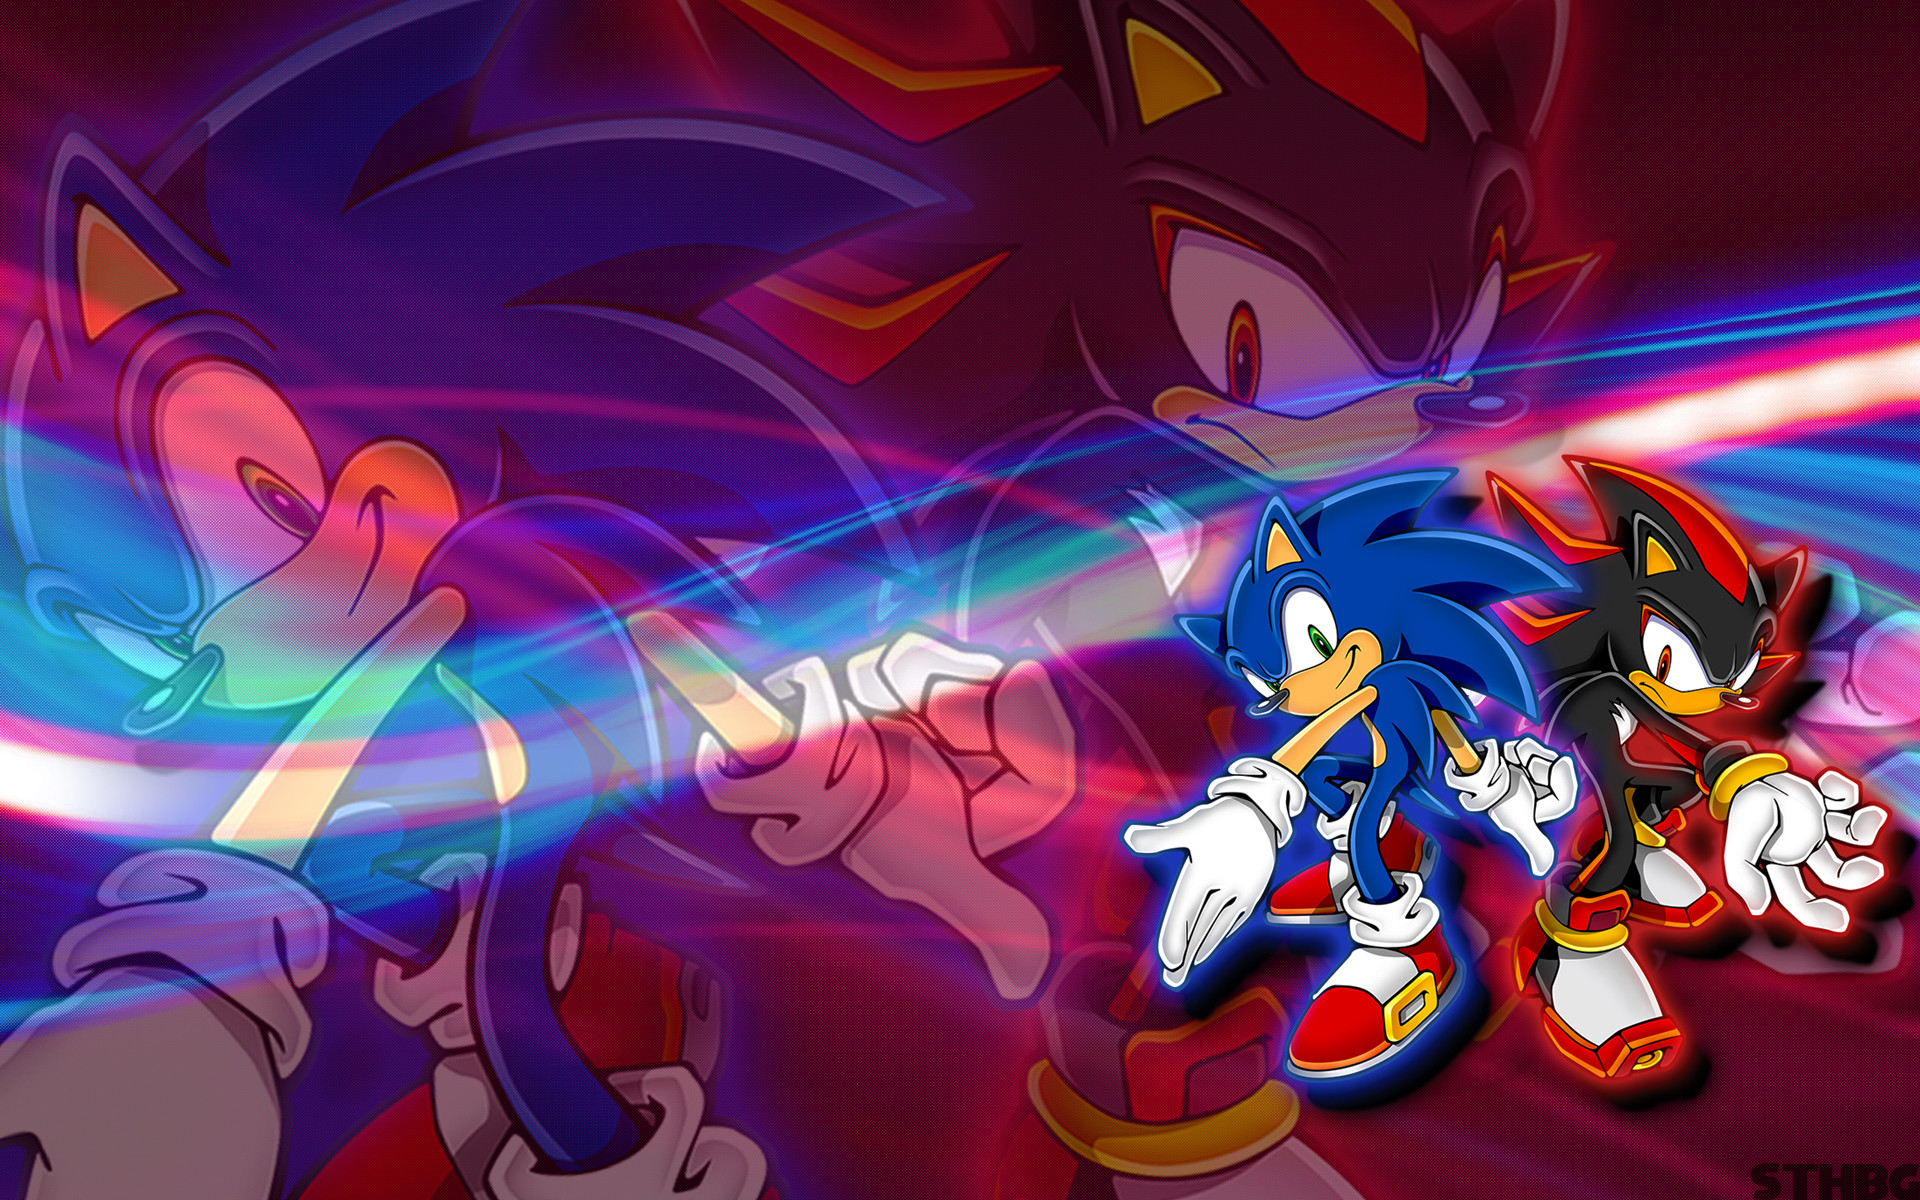 1920x1200 Sonic And Shadow Wallpaper by SonicTheHedgehogBG Sonic And Shadow Wallpaper  by SonicTheHedgehogBG